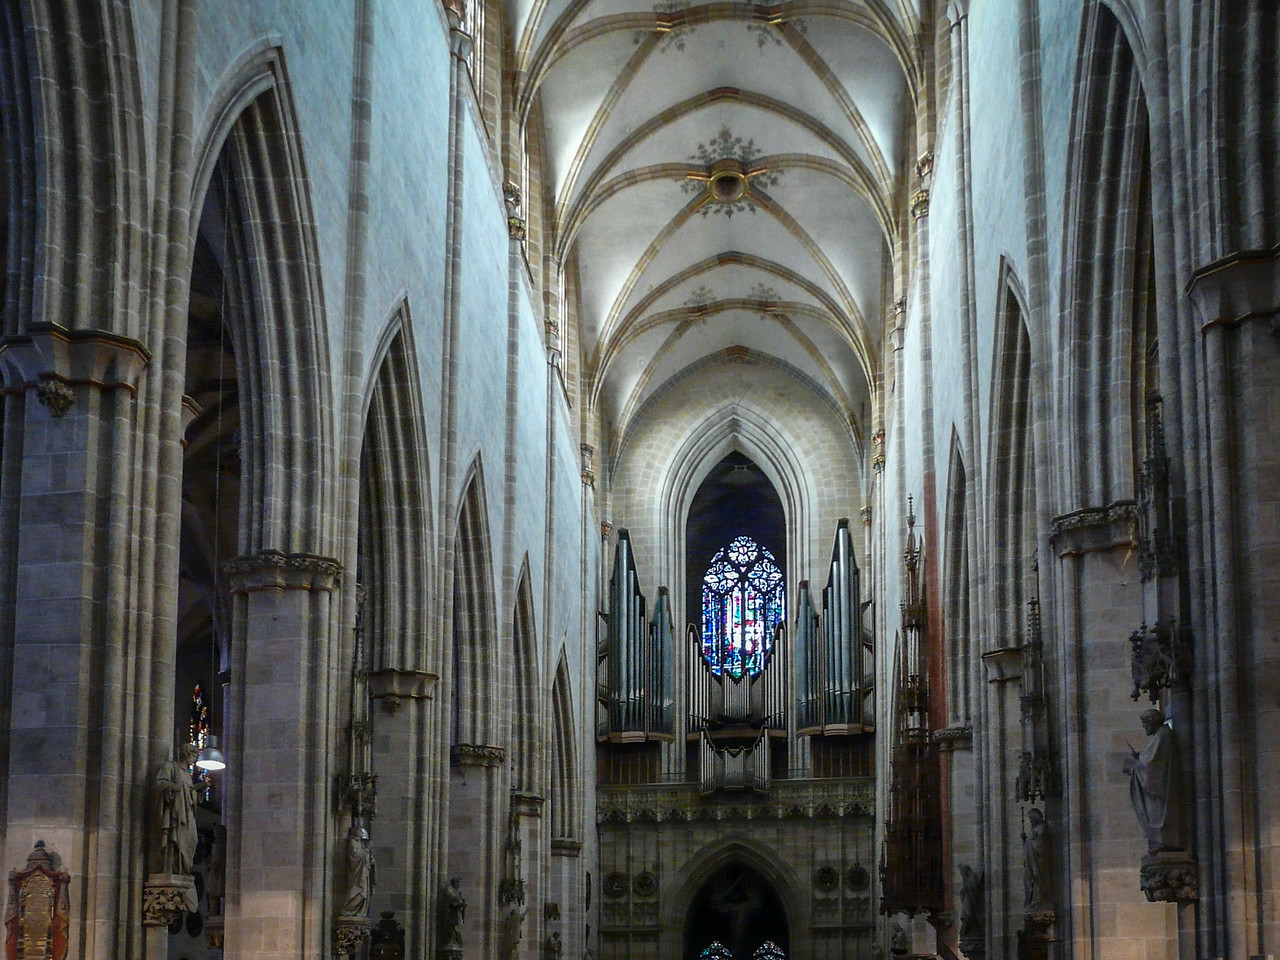 Inside the Ulm Cathedral